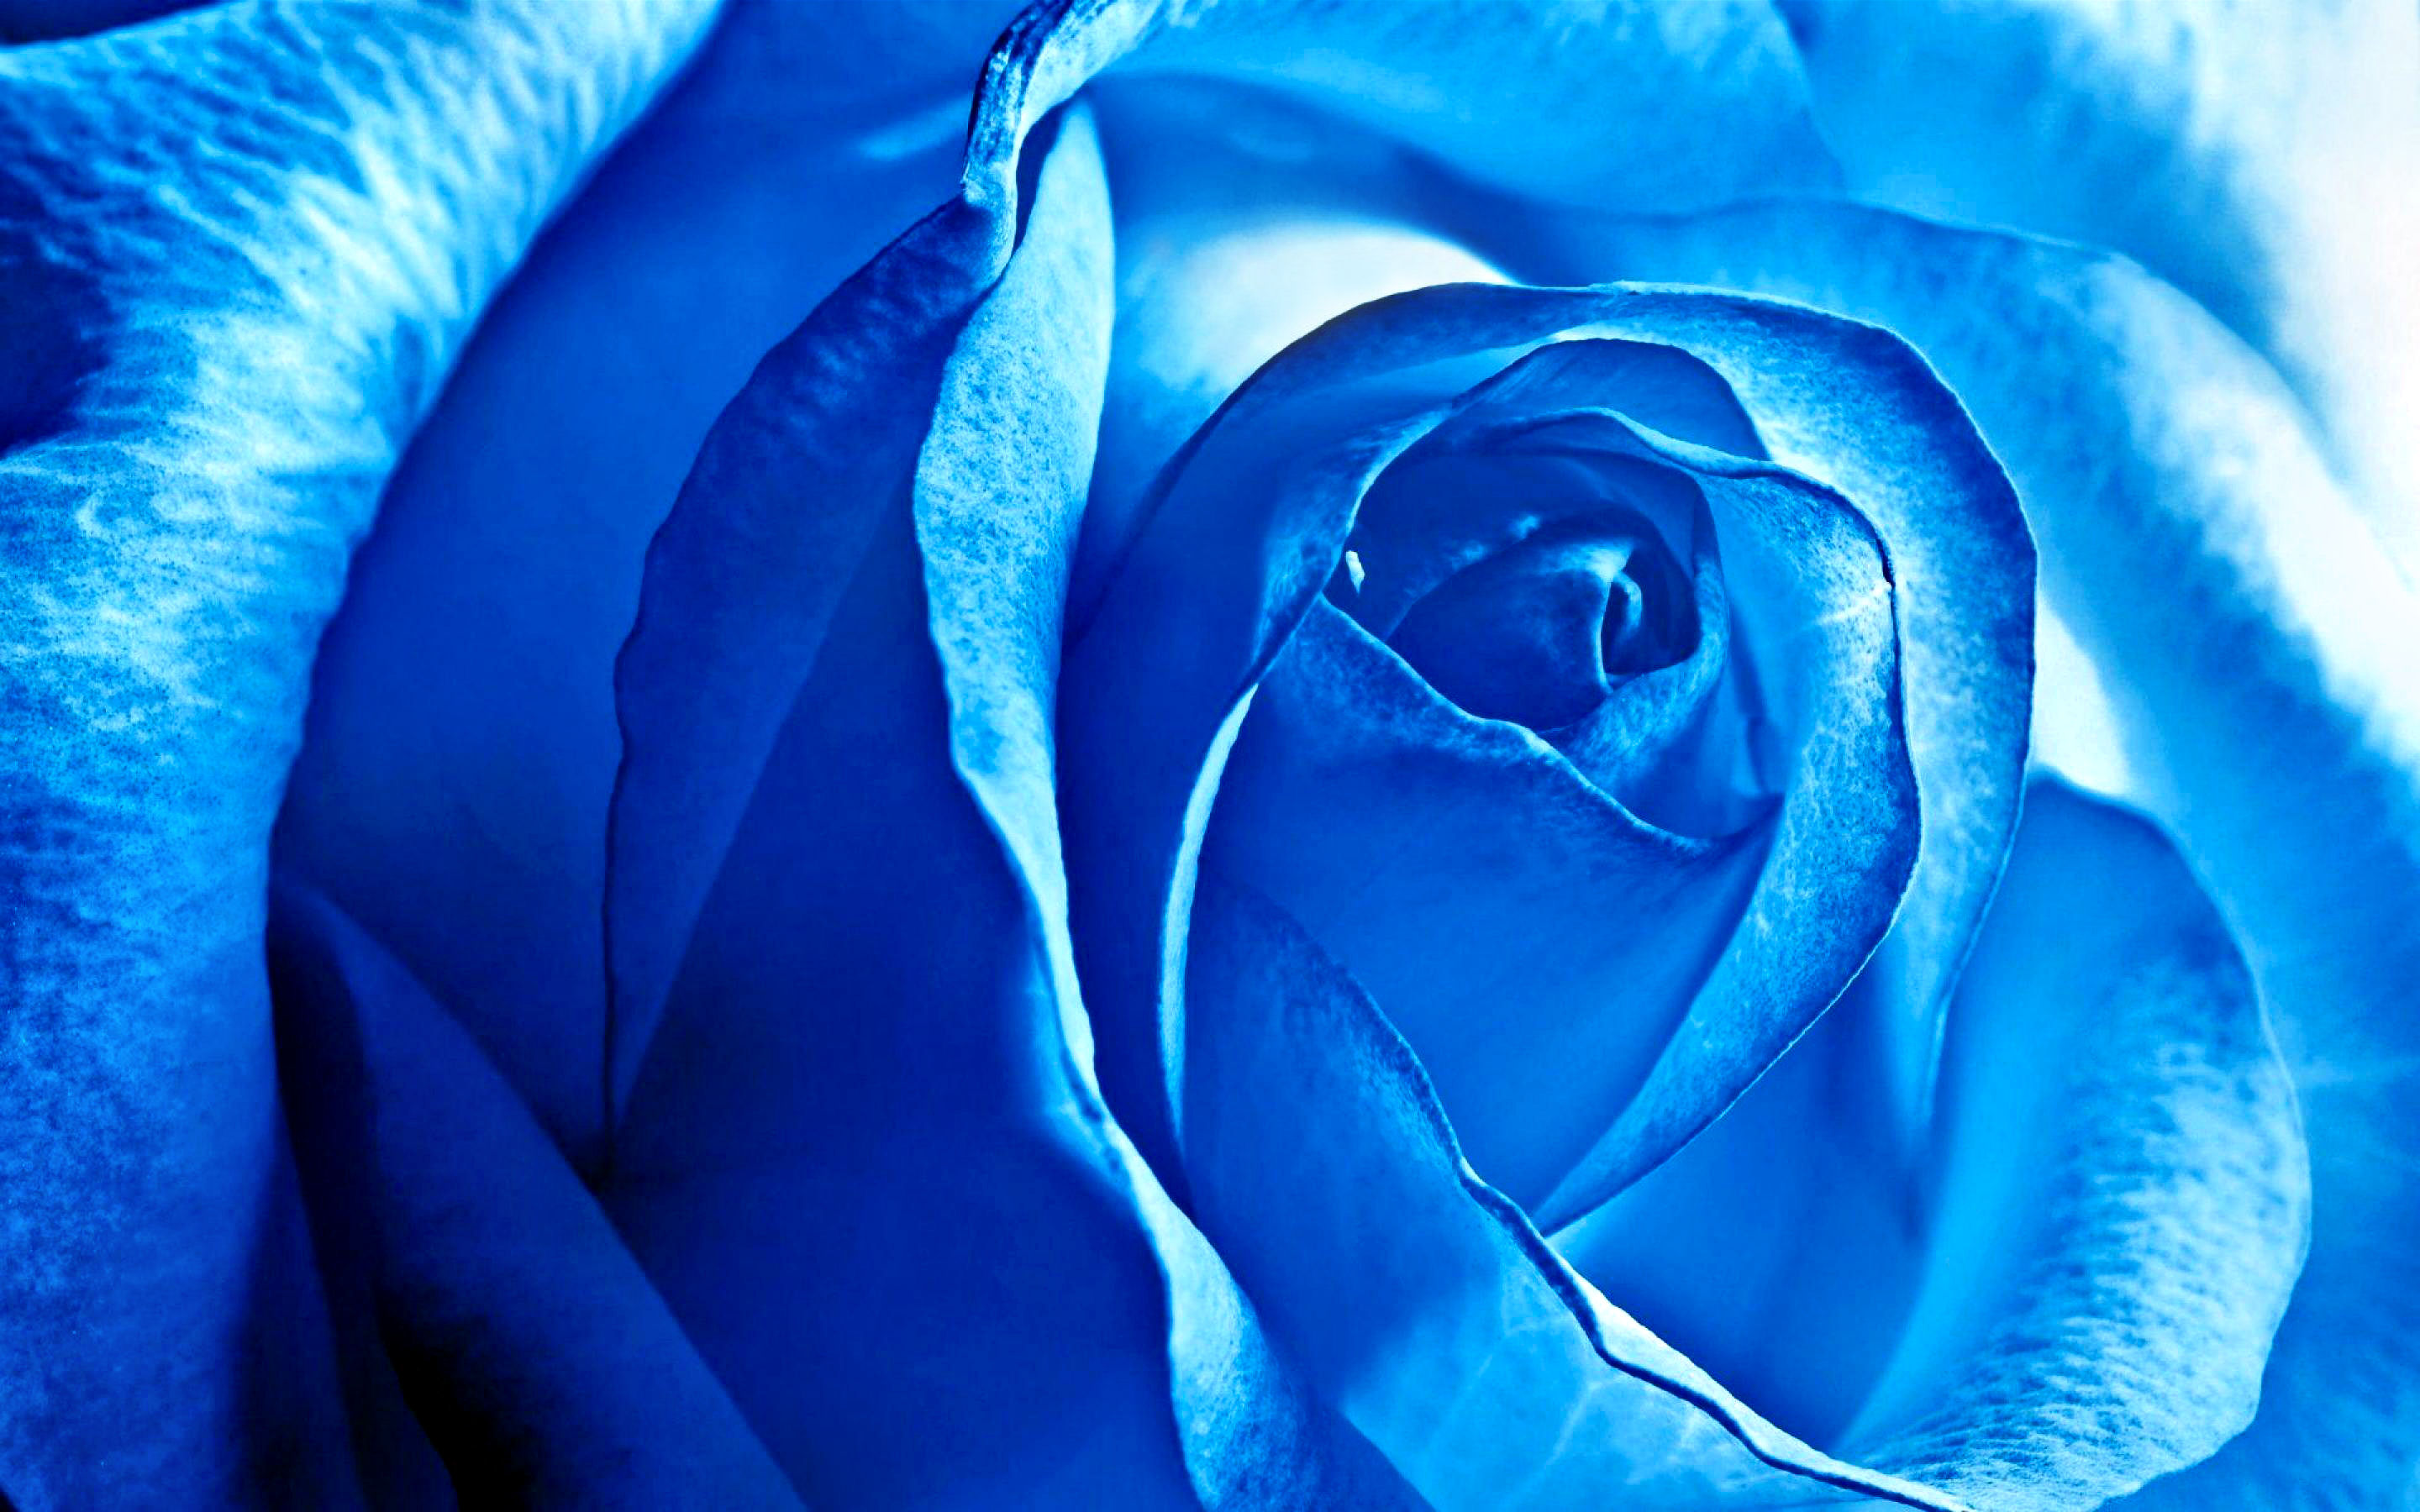 rose desktop wallpaper download roses wallpaper rose heart free